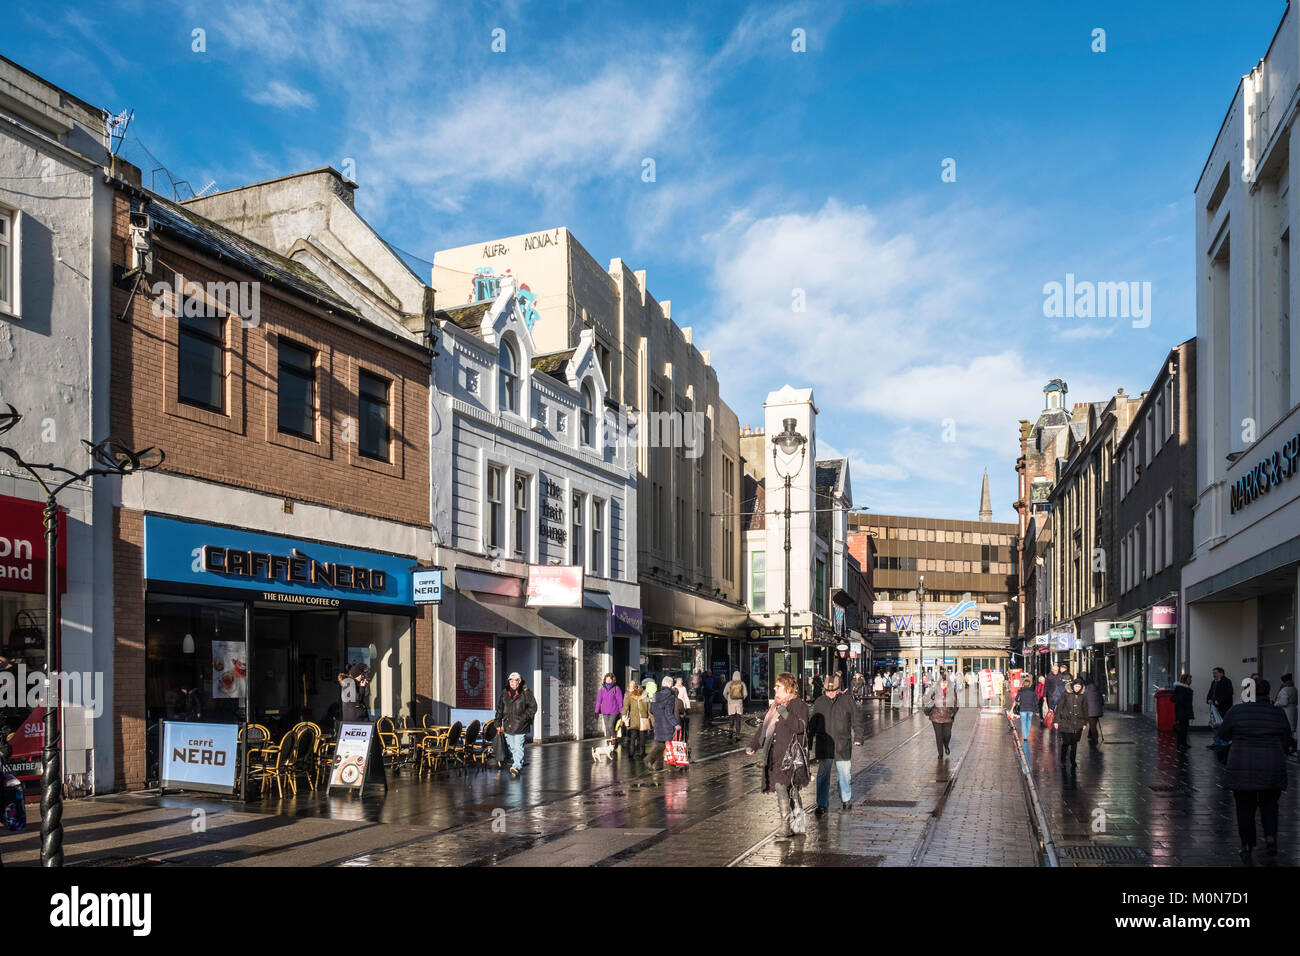 View along Murraygate pedestrian street towards Wellgate shopping centre in Dundee, Scotland, United Kingdom - Stock Image